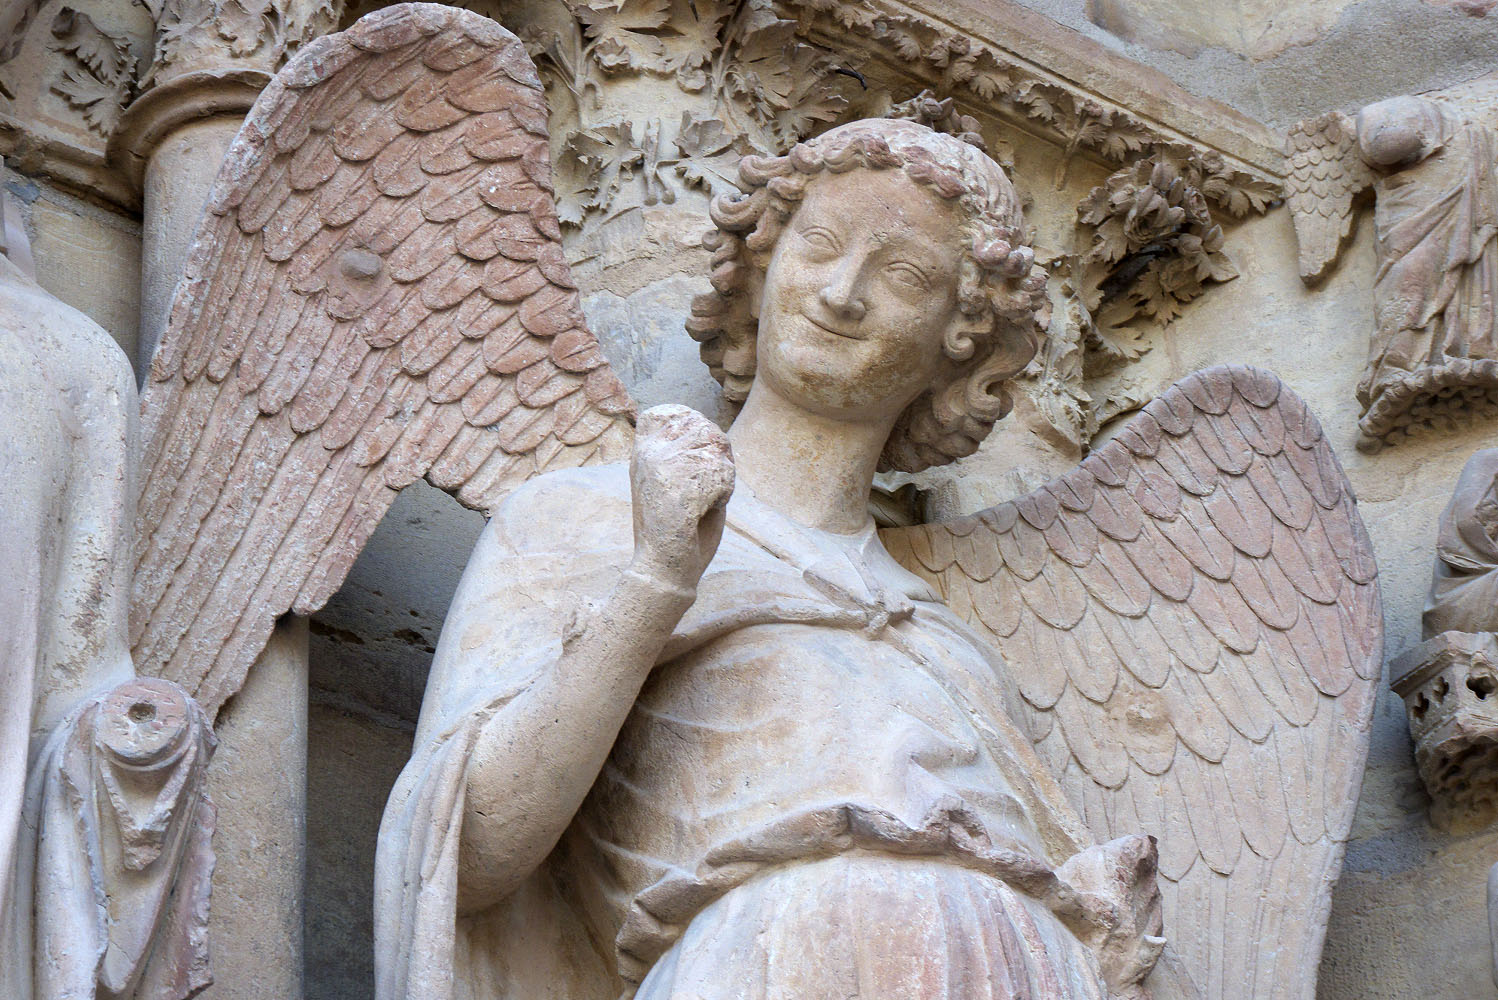 Personal Paris Reims smiing angel